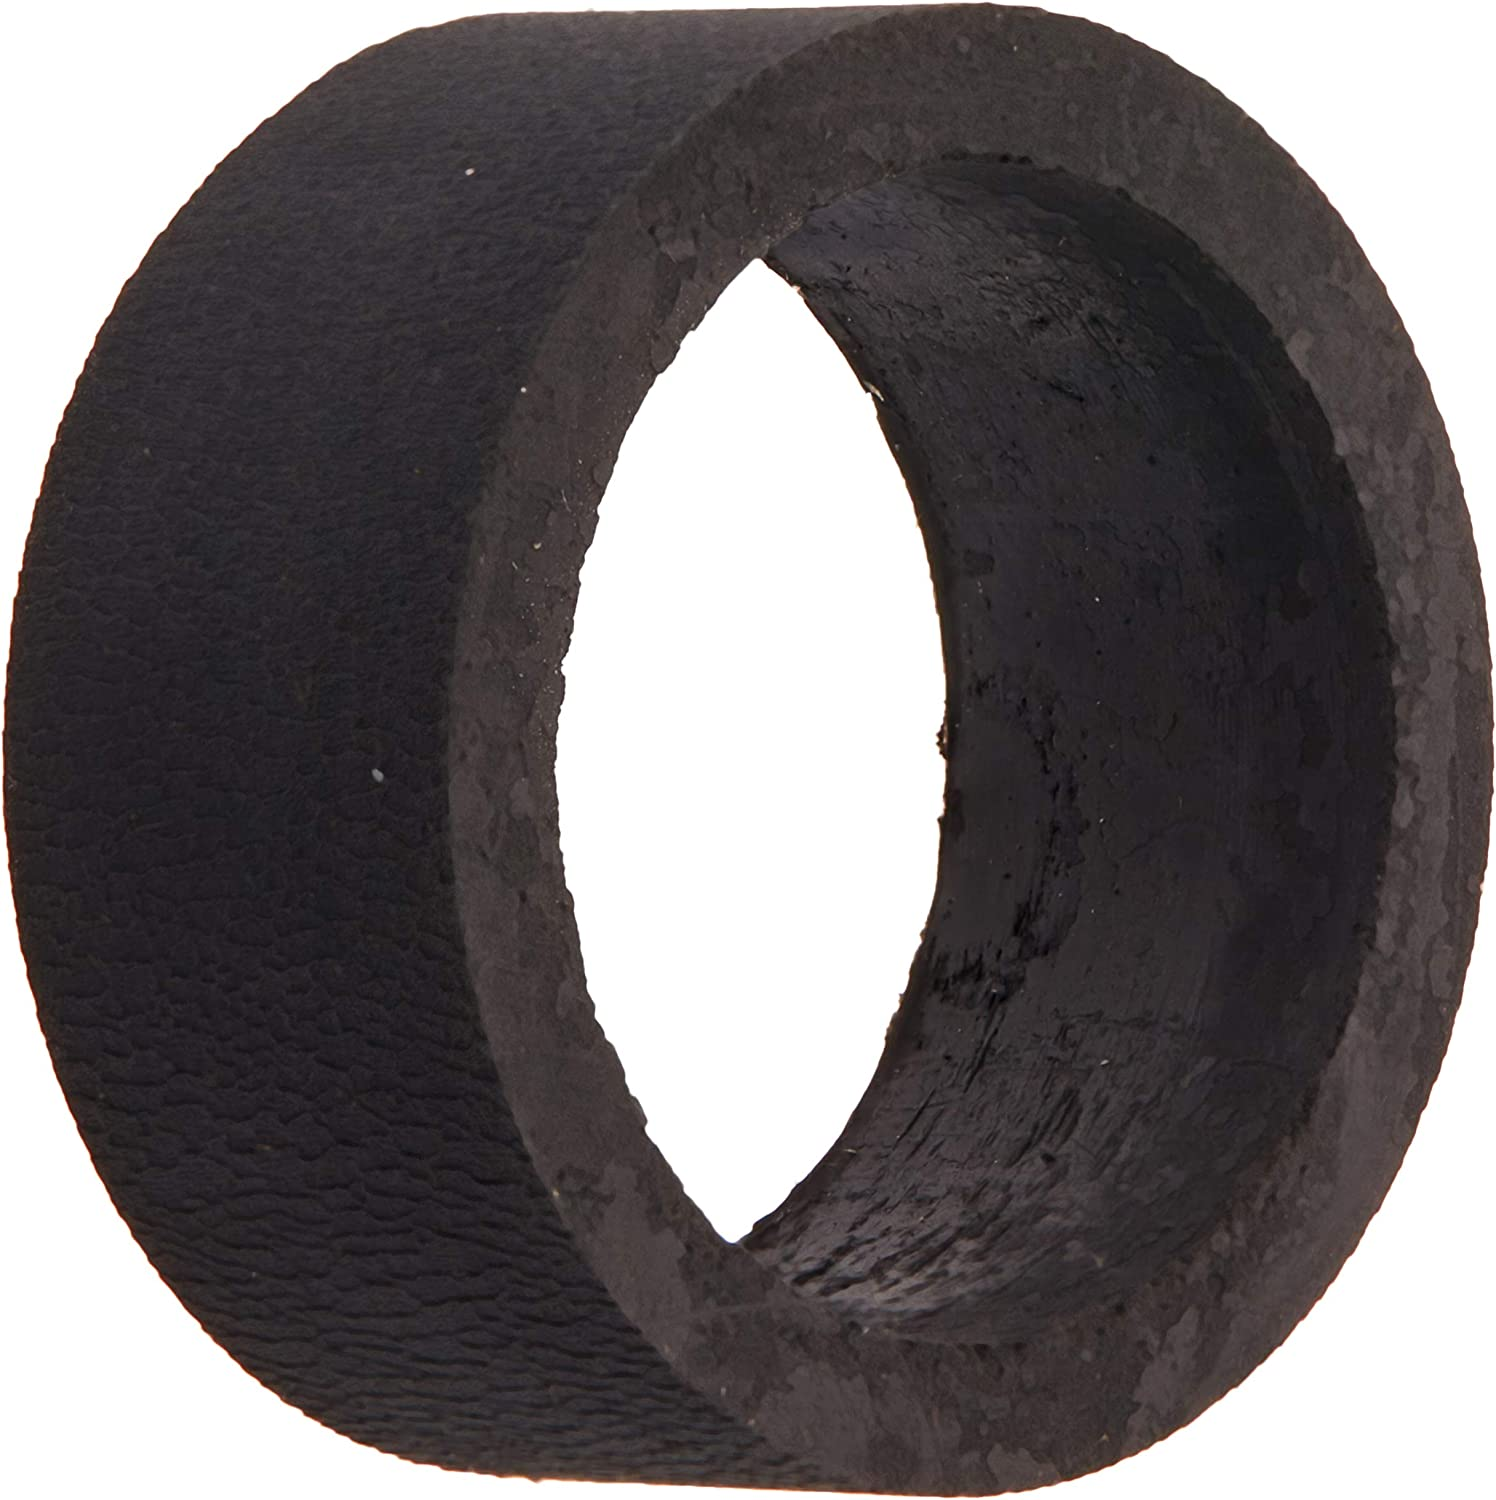 Samsung JC73-00163A Roller_S Tucson Mall Rubber-Pickup Bargain